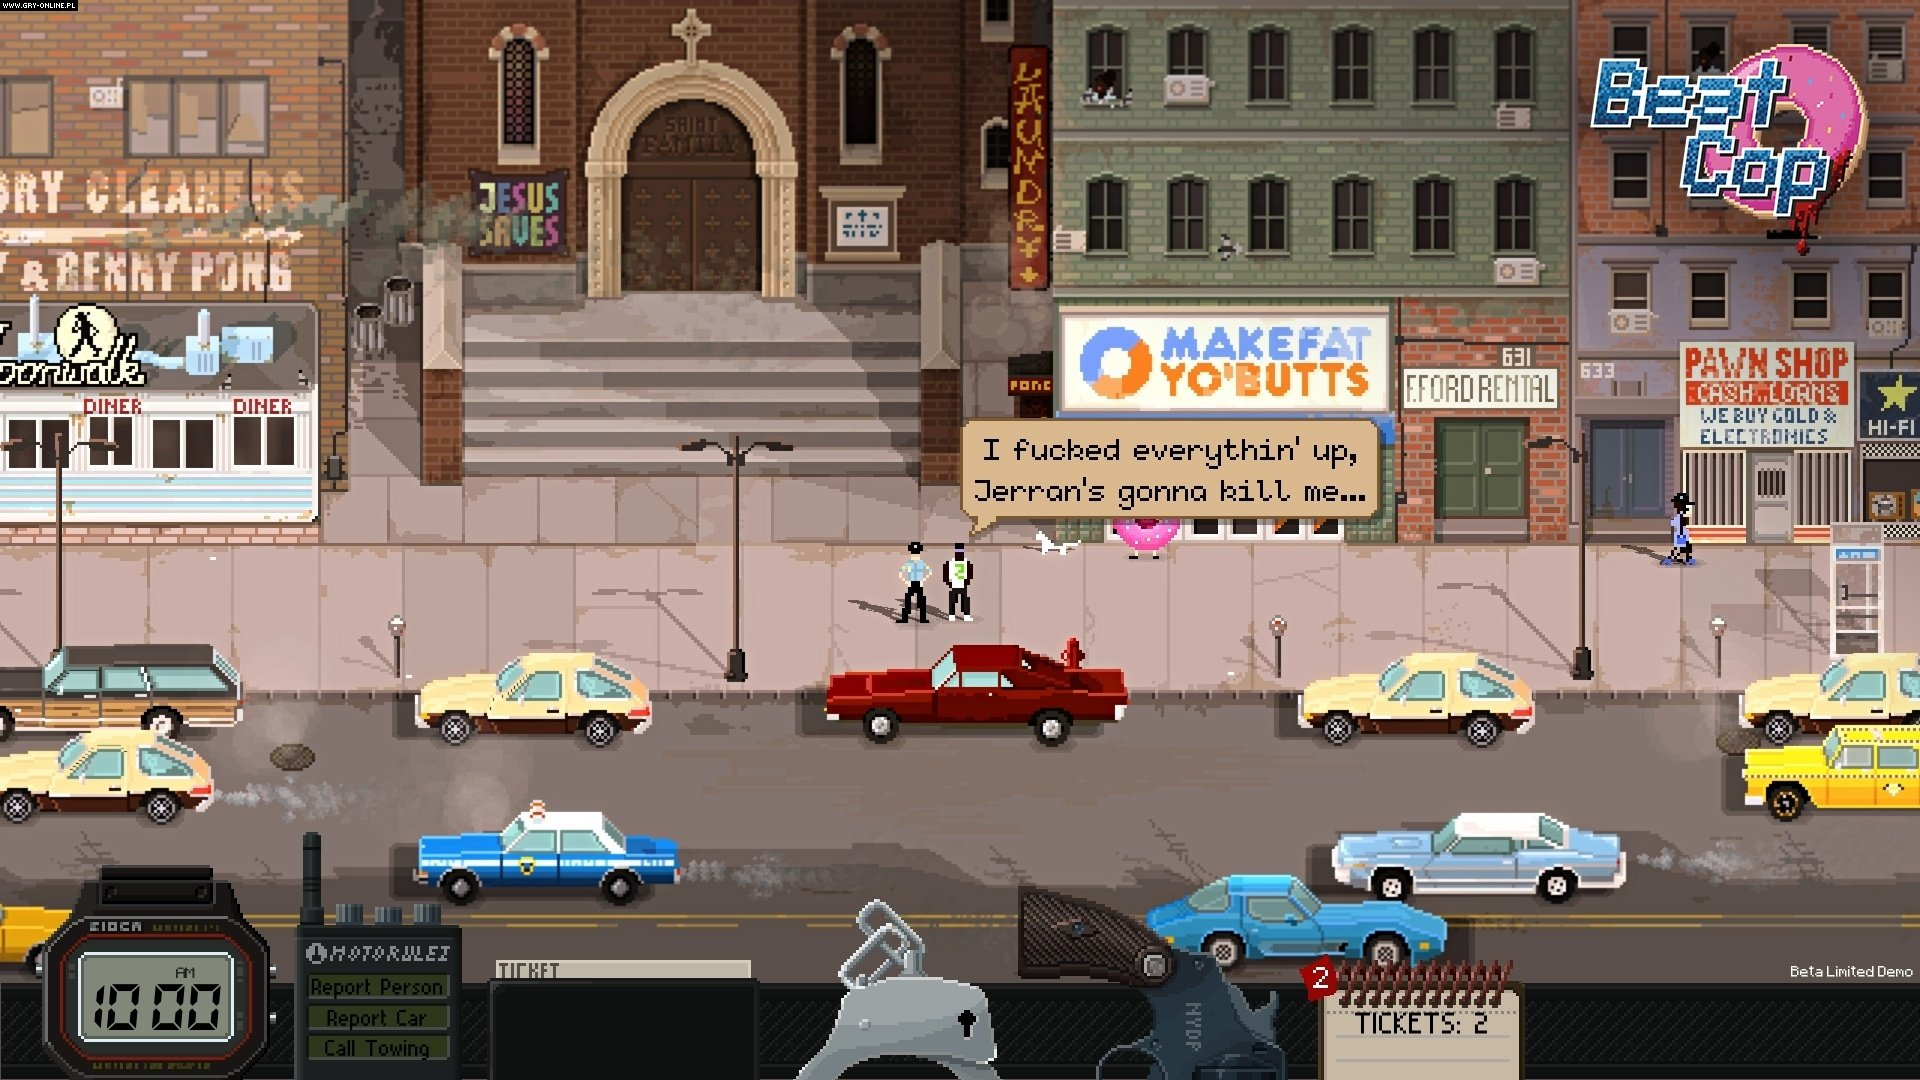 Beat Cop PC Games Image 5/16, Pixel Crow, 11 bit studios